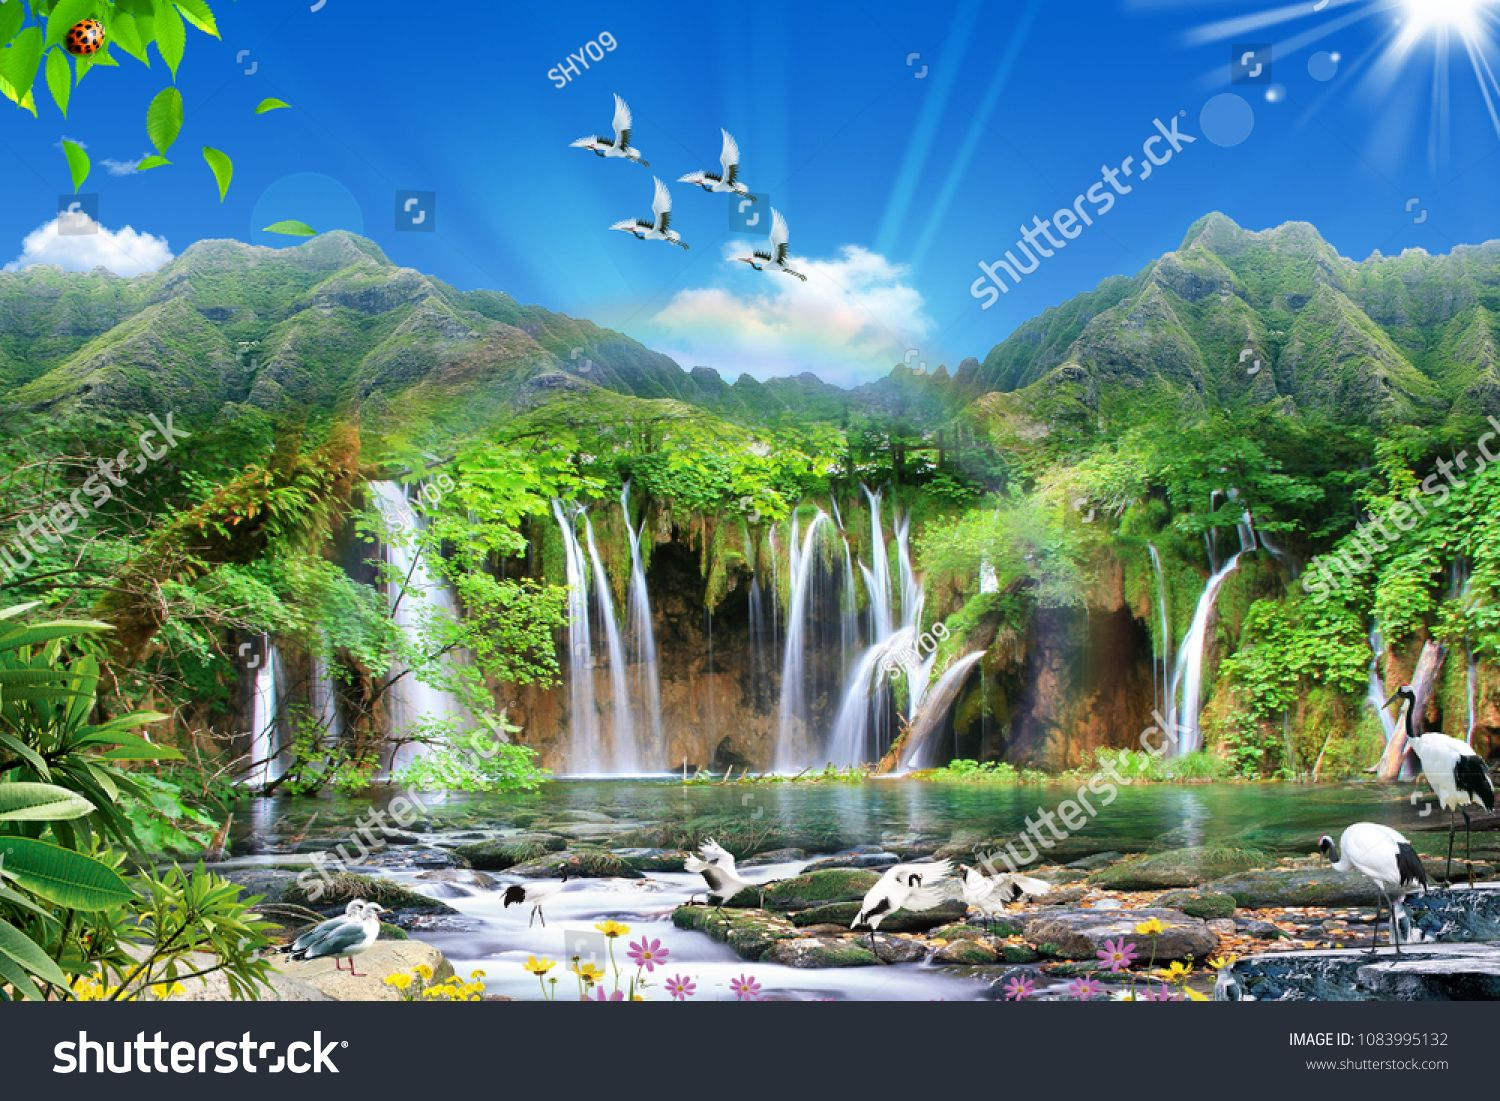 Amazing 3d Natural Viewamazing Natural View Landscape Wallpaper Nature Wallpaper Nature